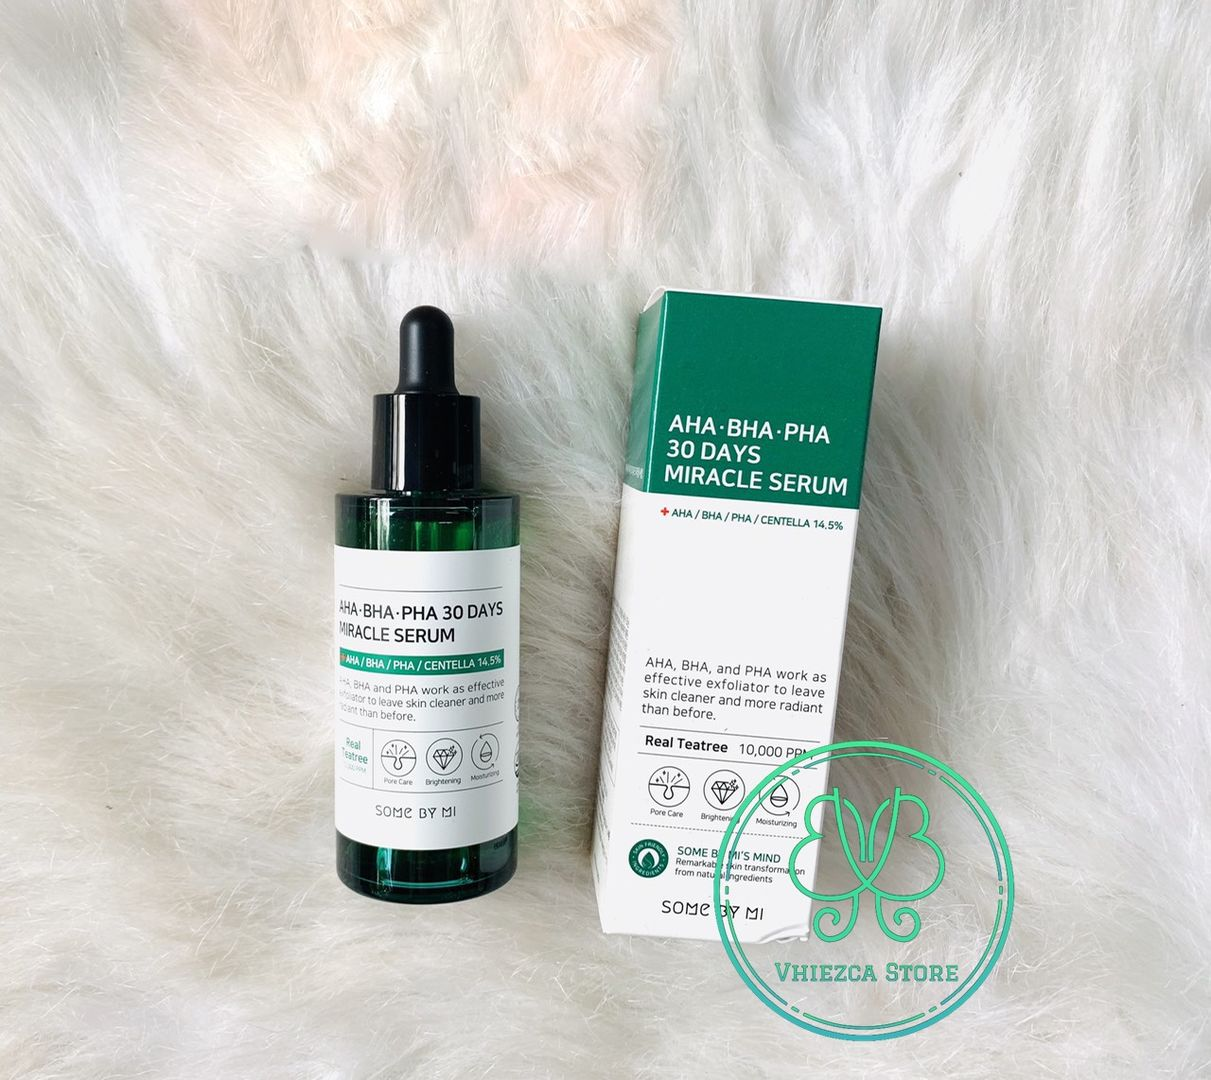 AHA BHA PHA 30 Days Miracle Serum - Vhiezca Store